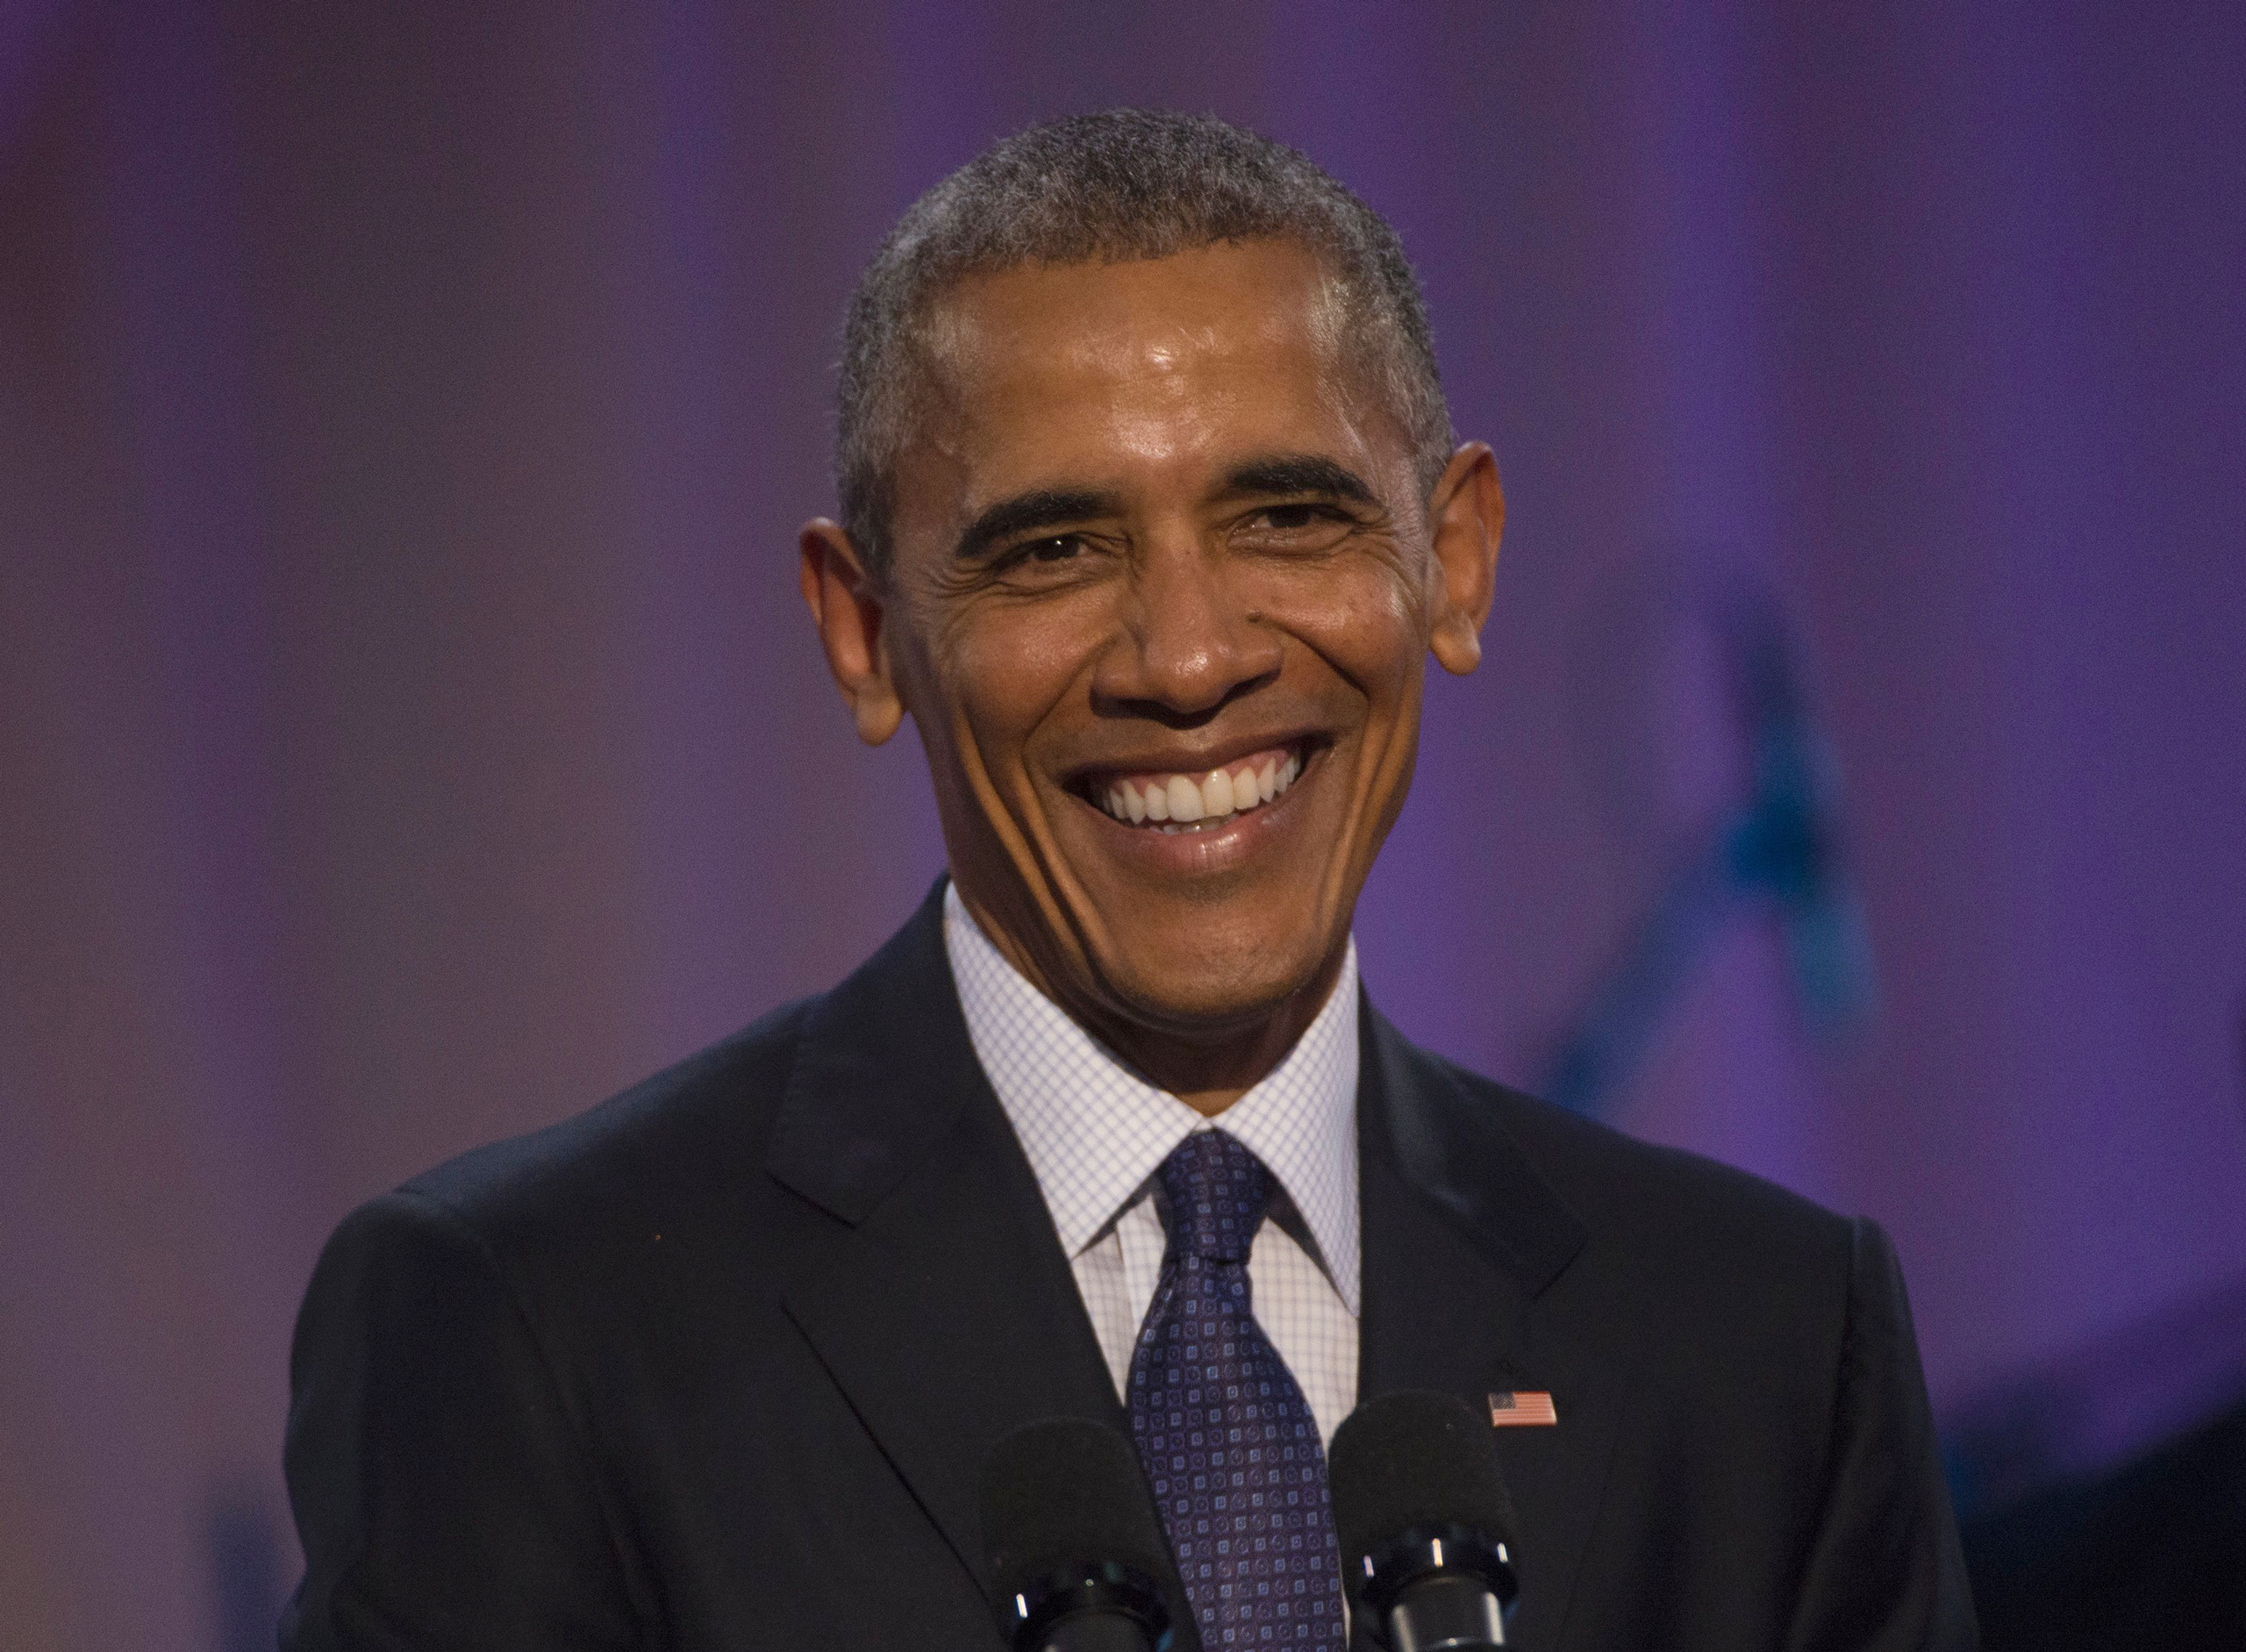 President Barack Obama delivers remarks at an evening performance of BET's  Love and Happiness: A Musical Experience  at the White House in Washington on Oct. 21, 2016.